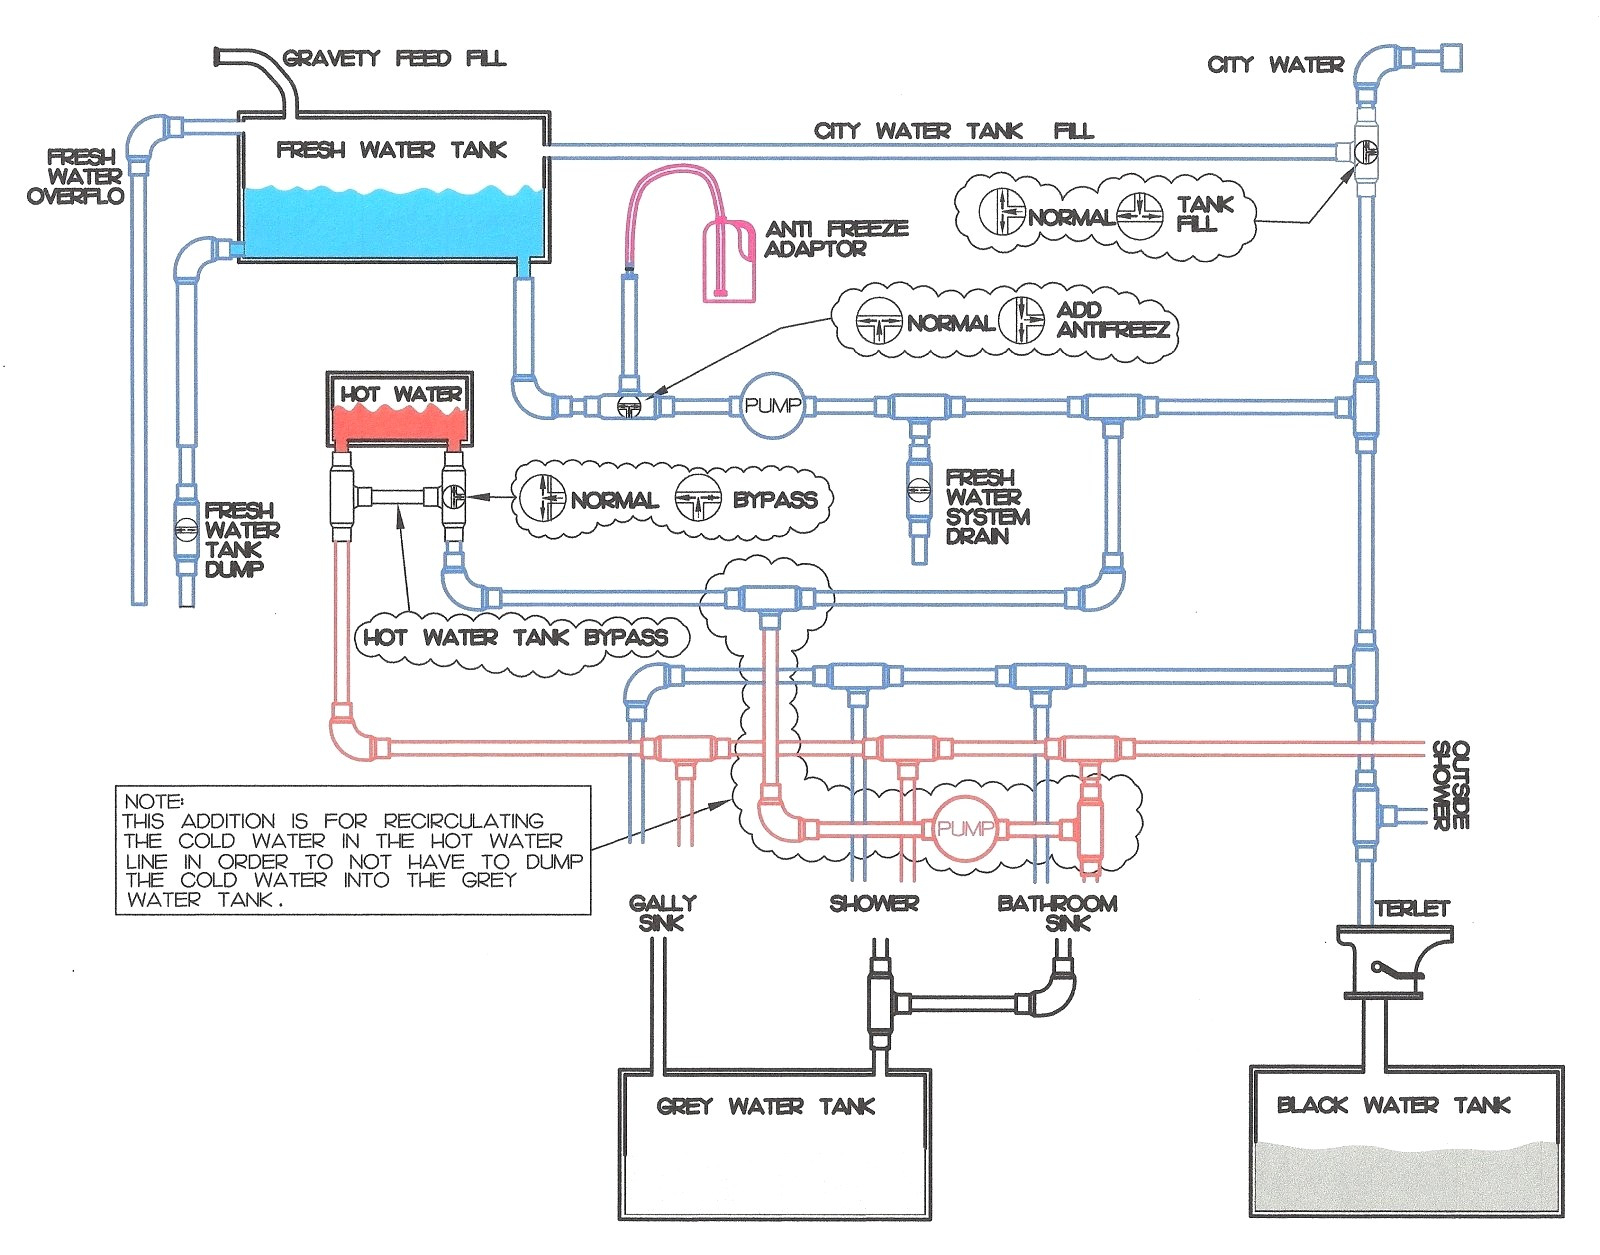 fast e6 ignition box wiring diagram awesome dometic refrigerator wiring diagram pickenscountymedicalcenter